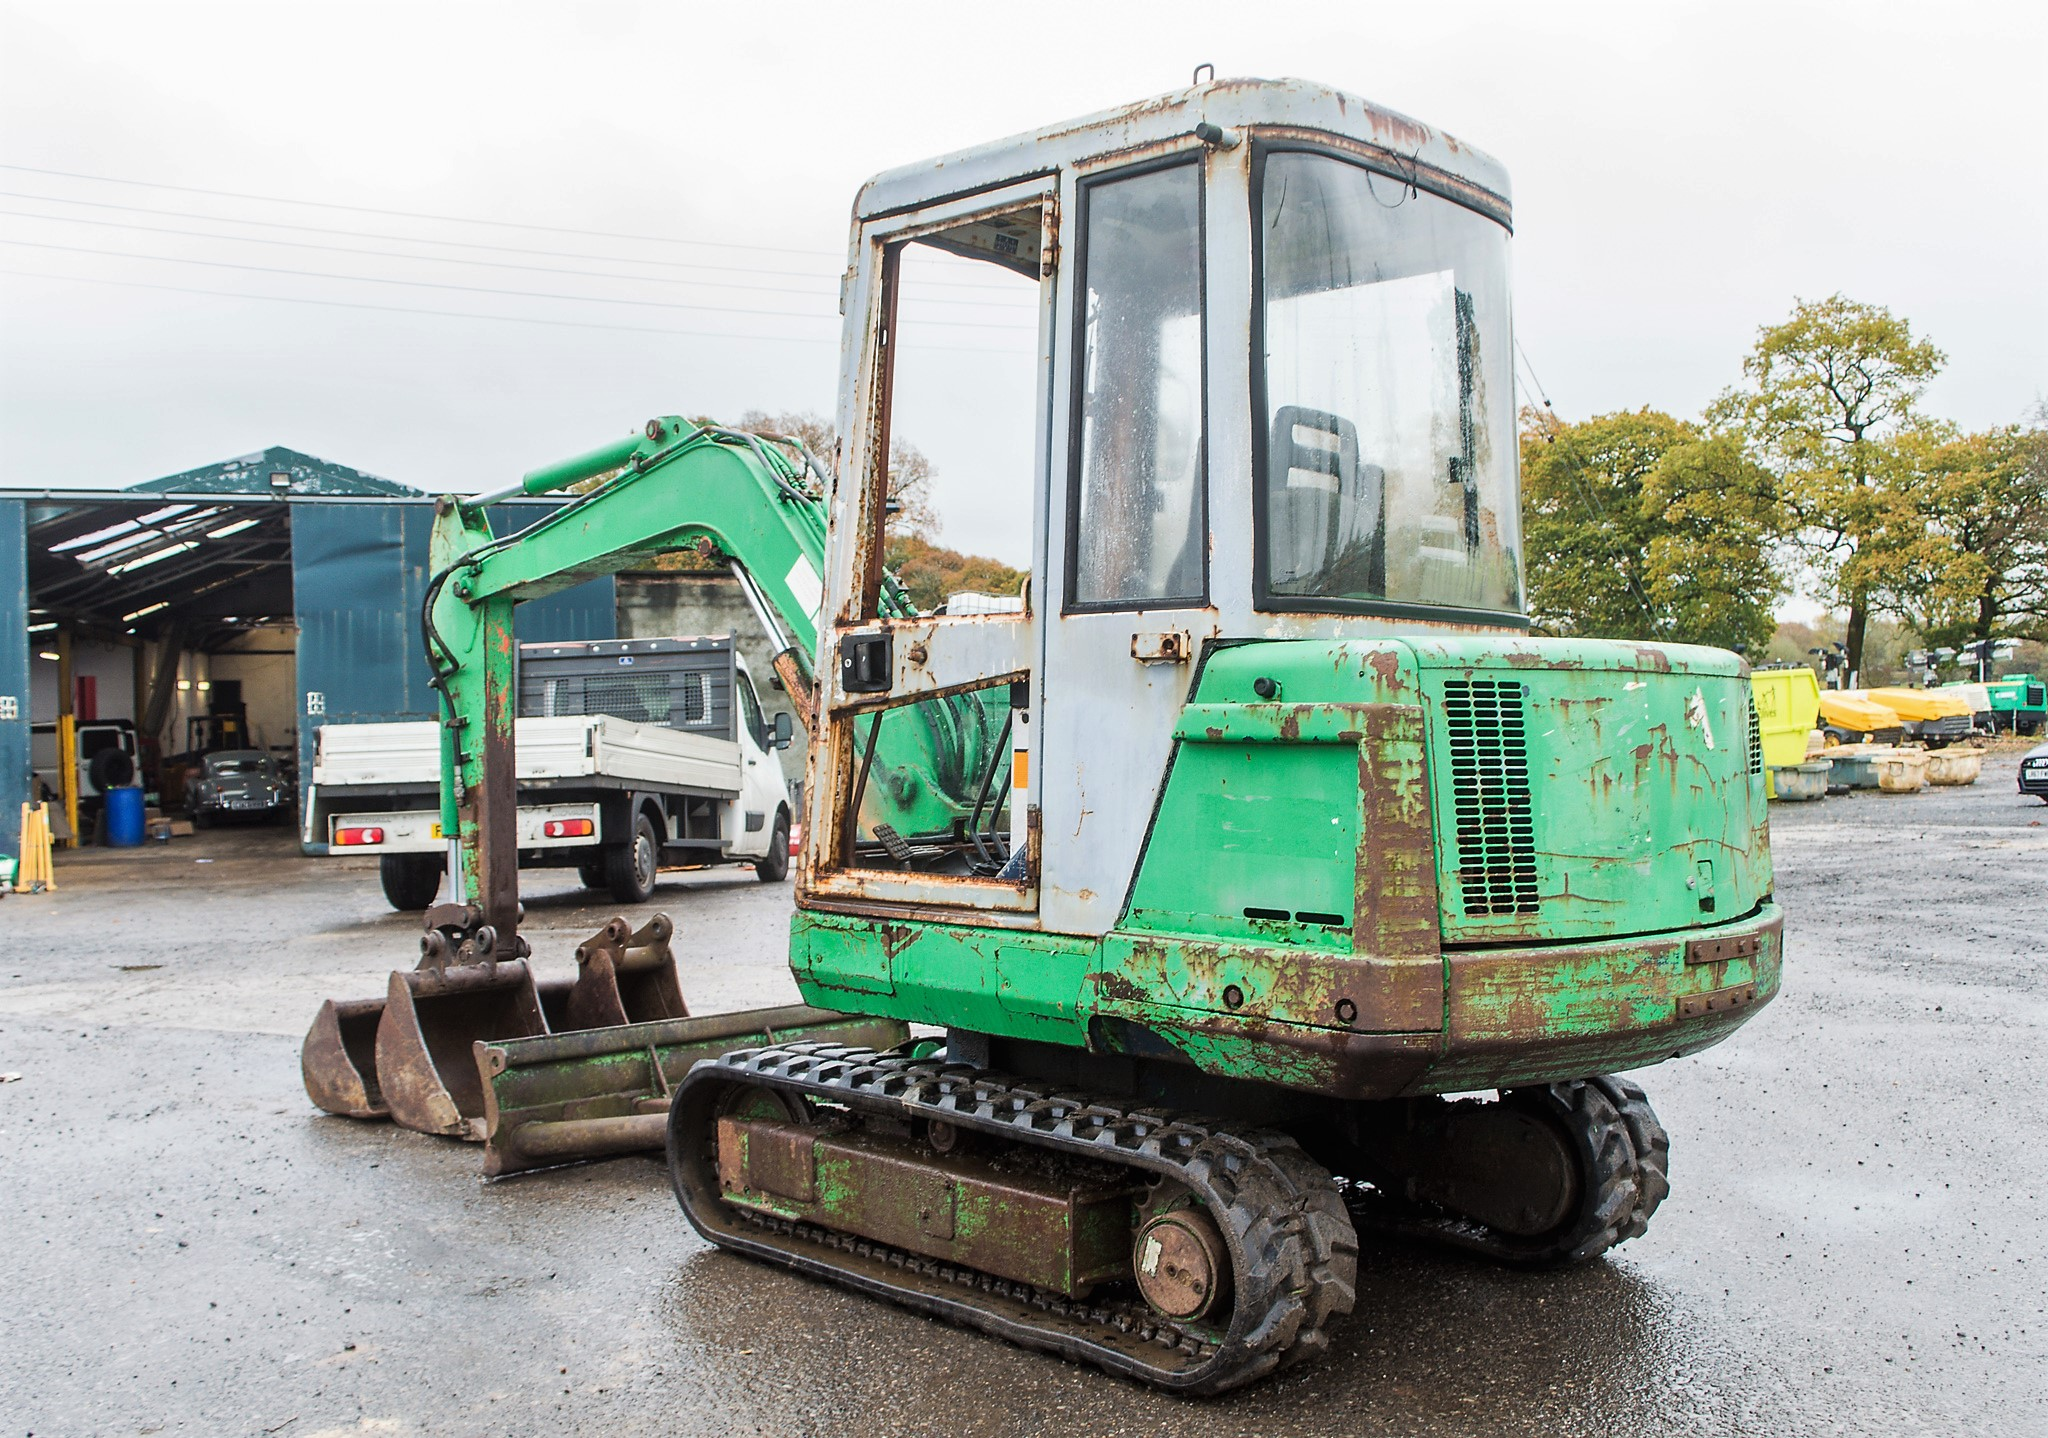 Lot 14 - Kubota KX71 2.8 tonne rubber tracked mini excavator S/N: 56354 Recorded Hours: 2611 blade, piped & 3